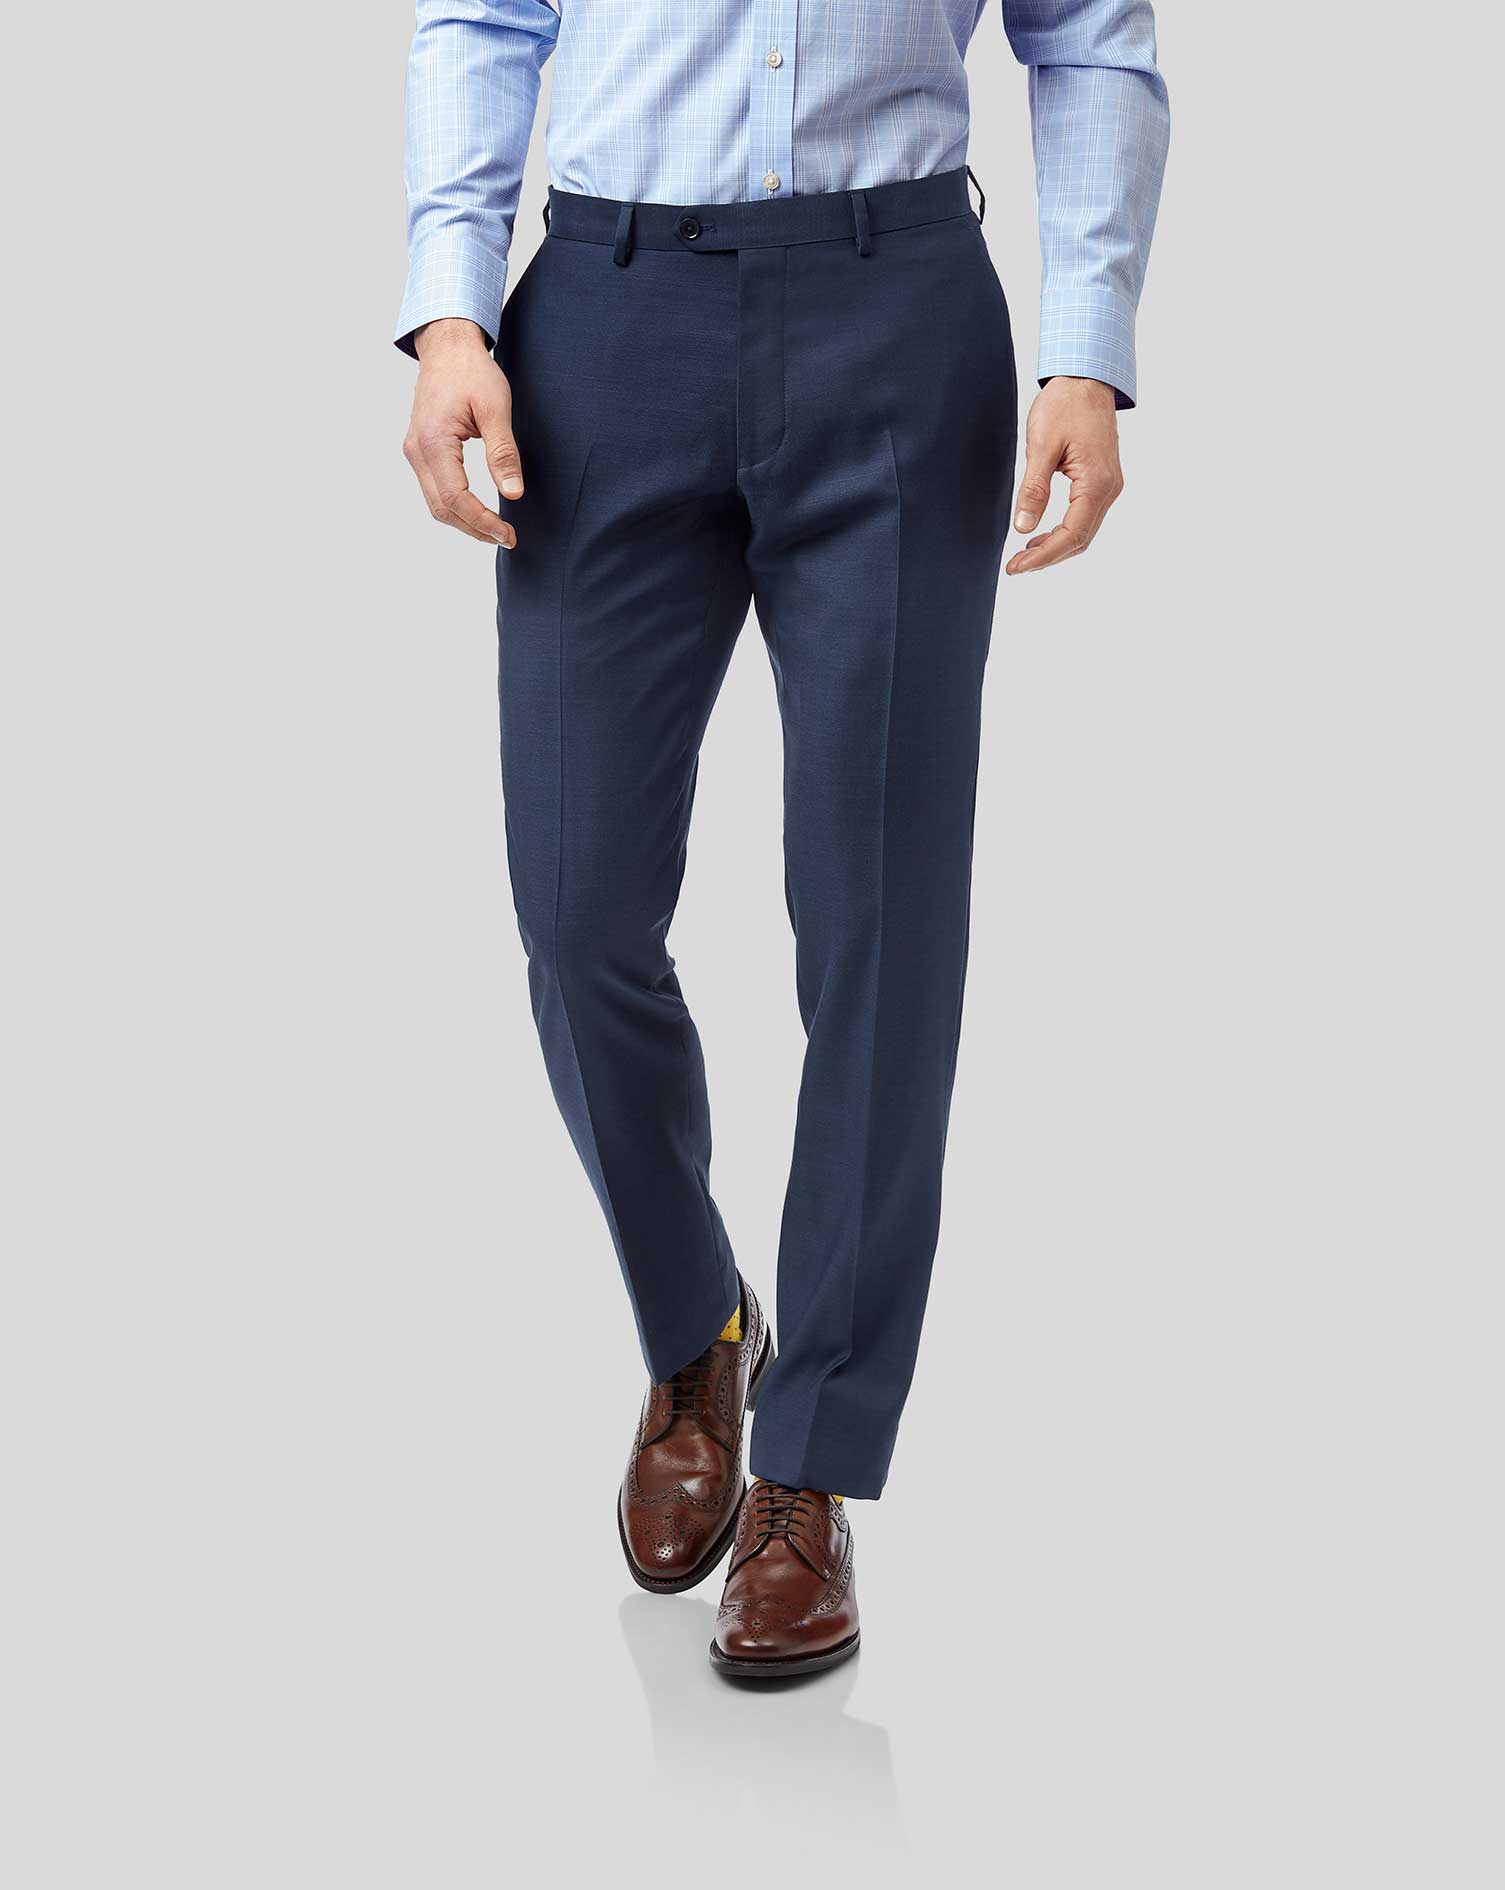 Wool Blue Slim Fit Twill Business Suit Trousers